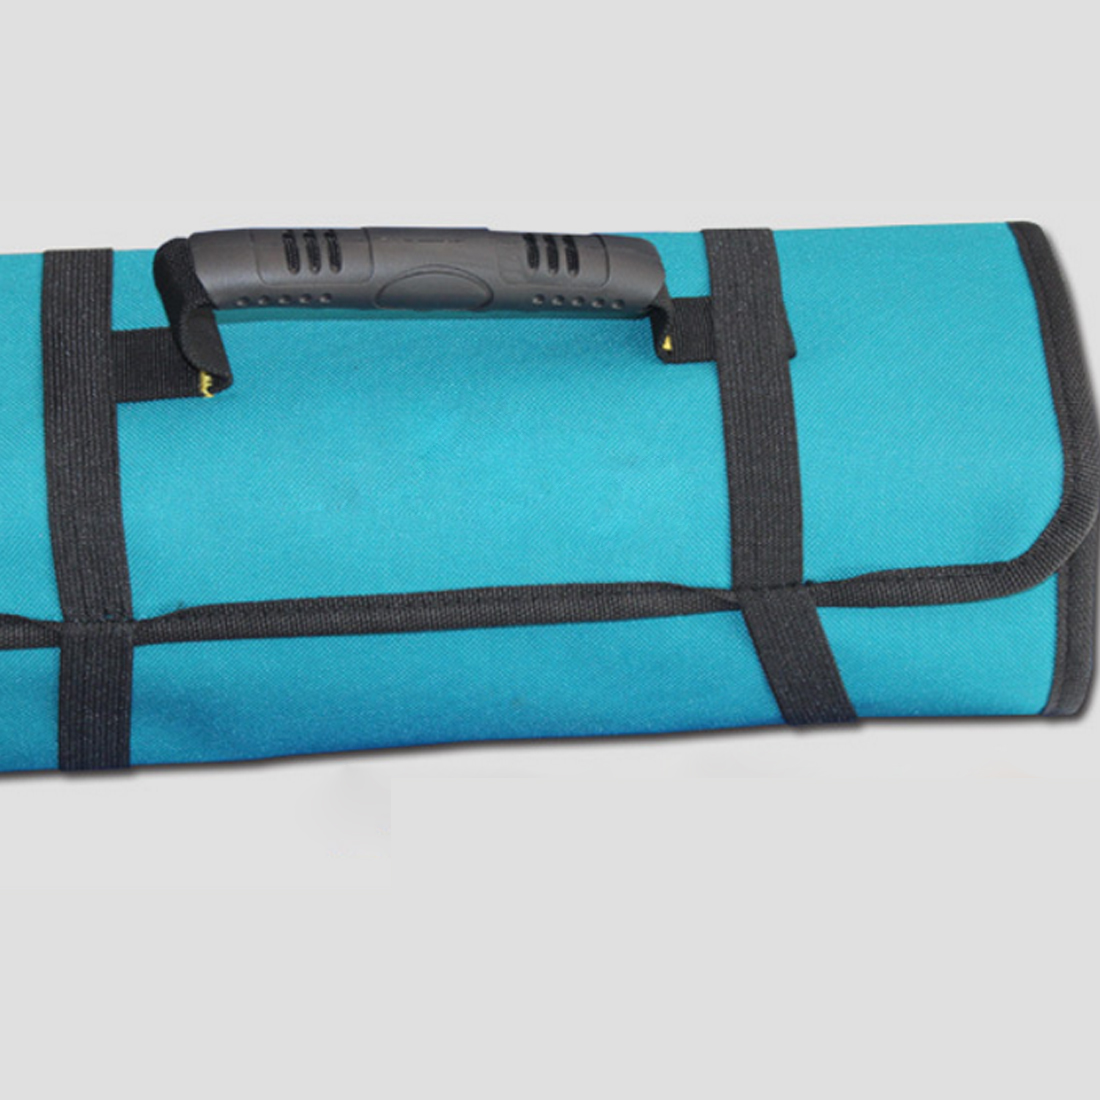 Reels Storage Tools Bag Multifunction Utility Bag Electrical Package Oxford Canvas Waterproof With Carrying Handles ballistic nylon tools bag for tools storage 280x245x180mm